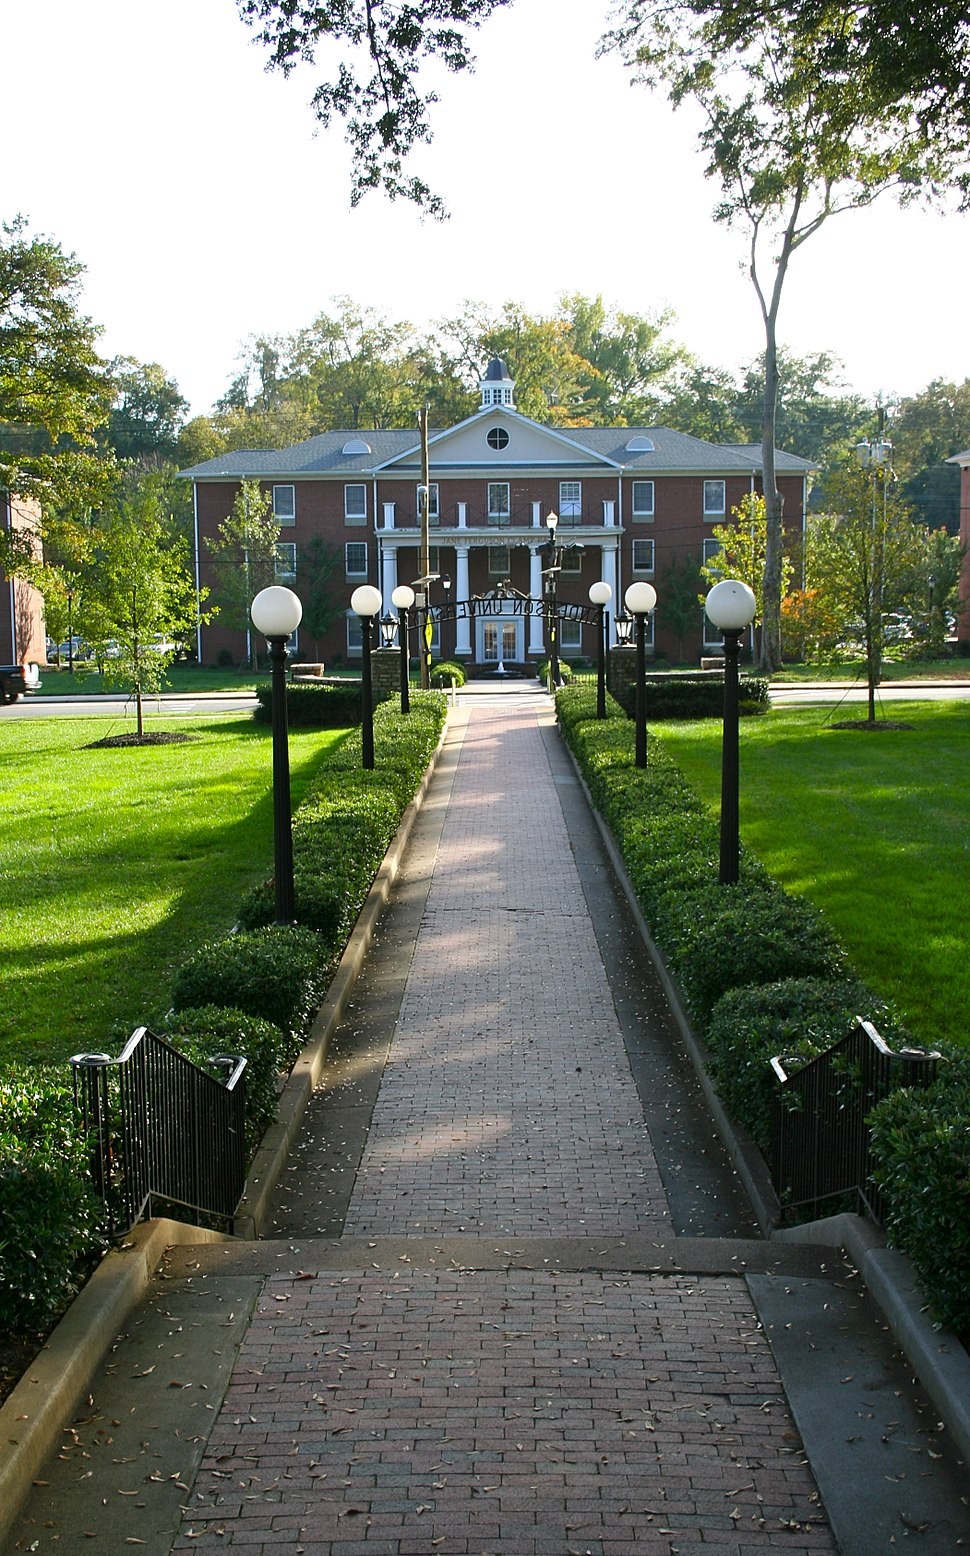 The Front Steps on the Lawn of Anderson University, South Carolina